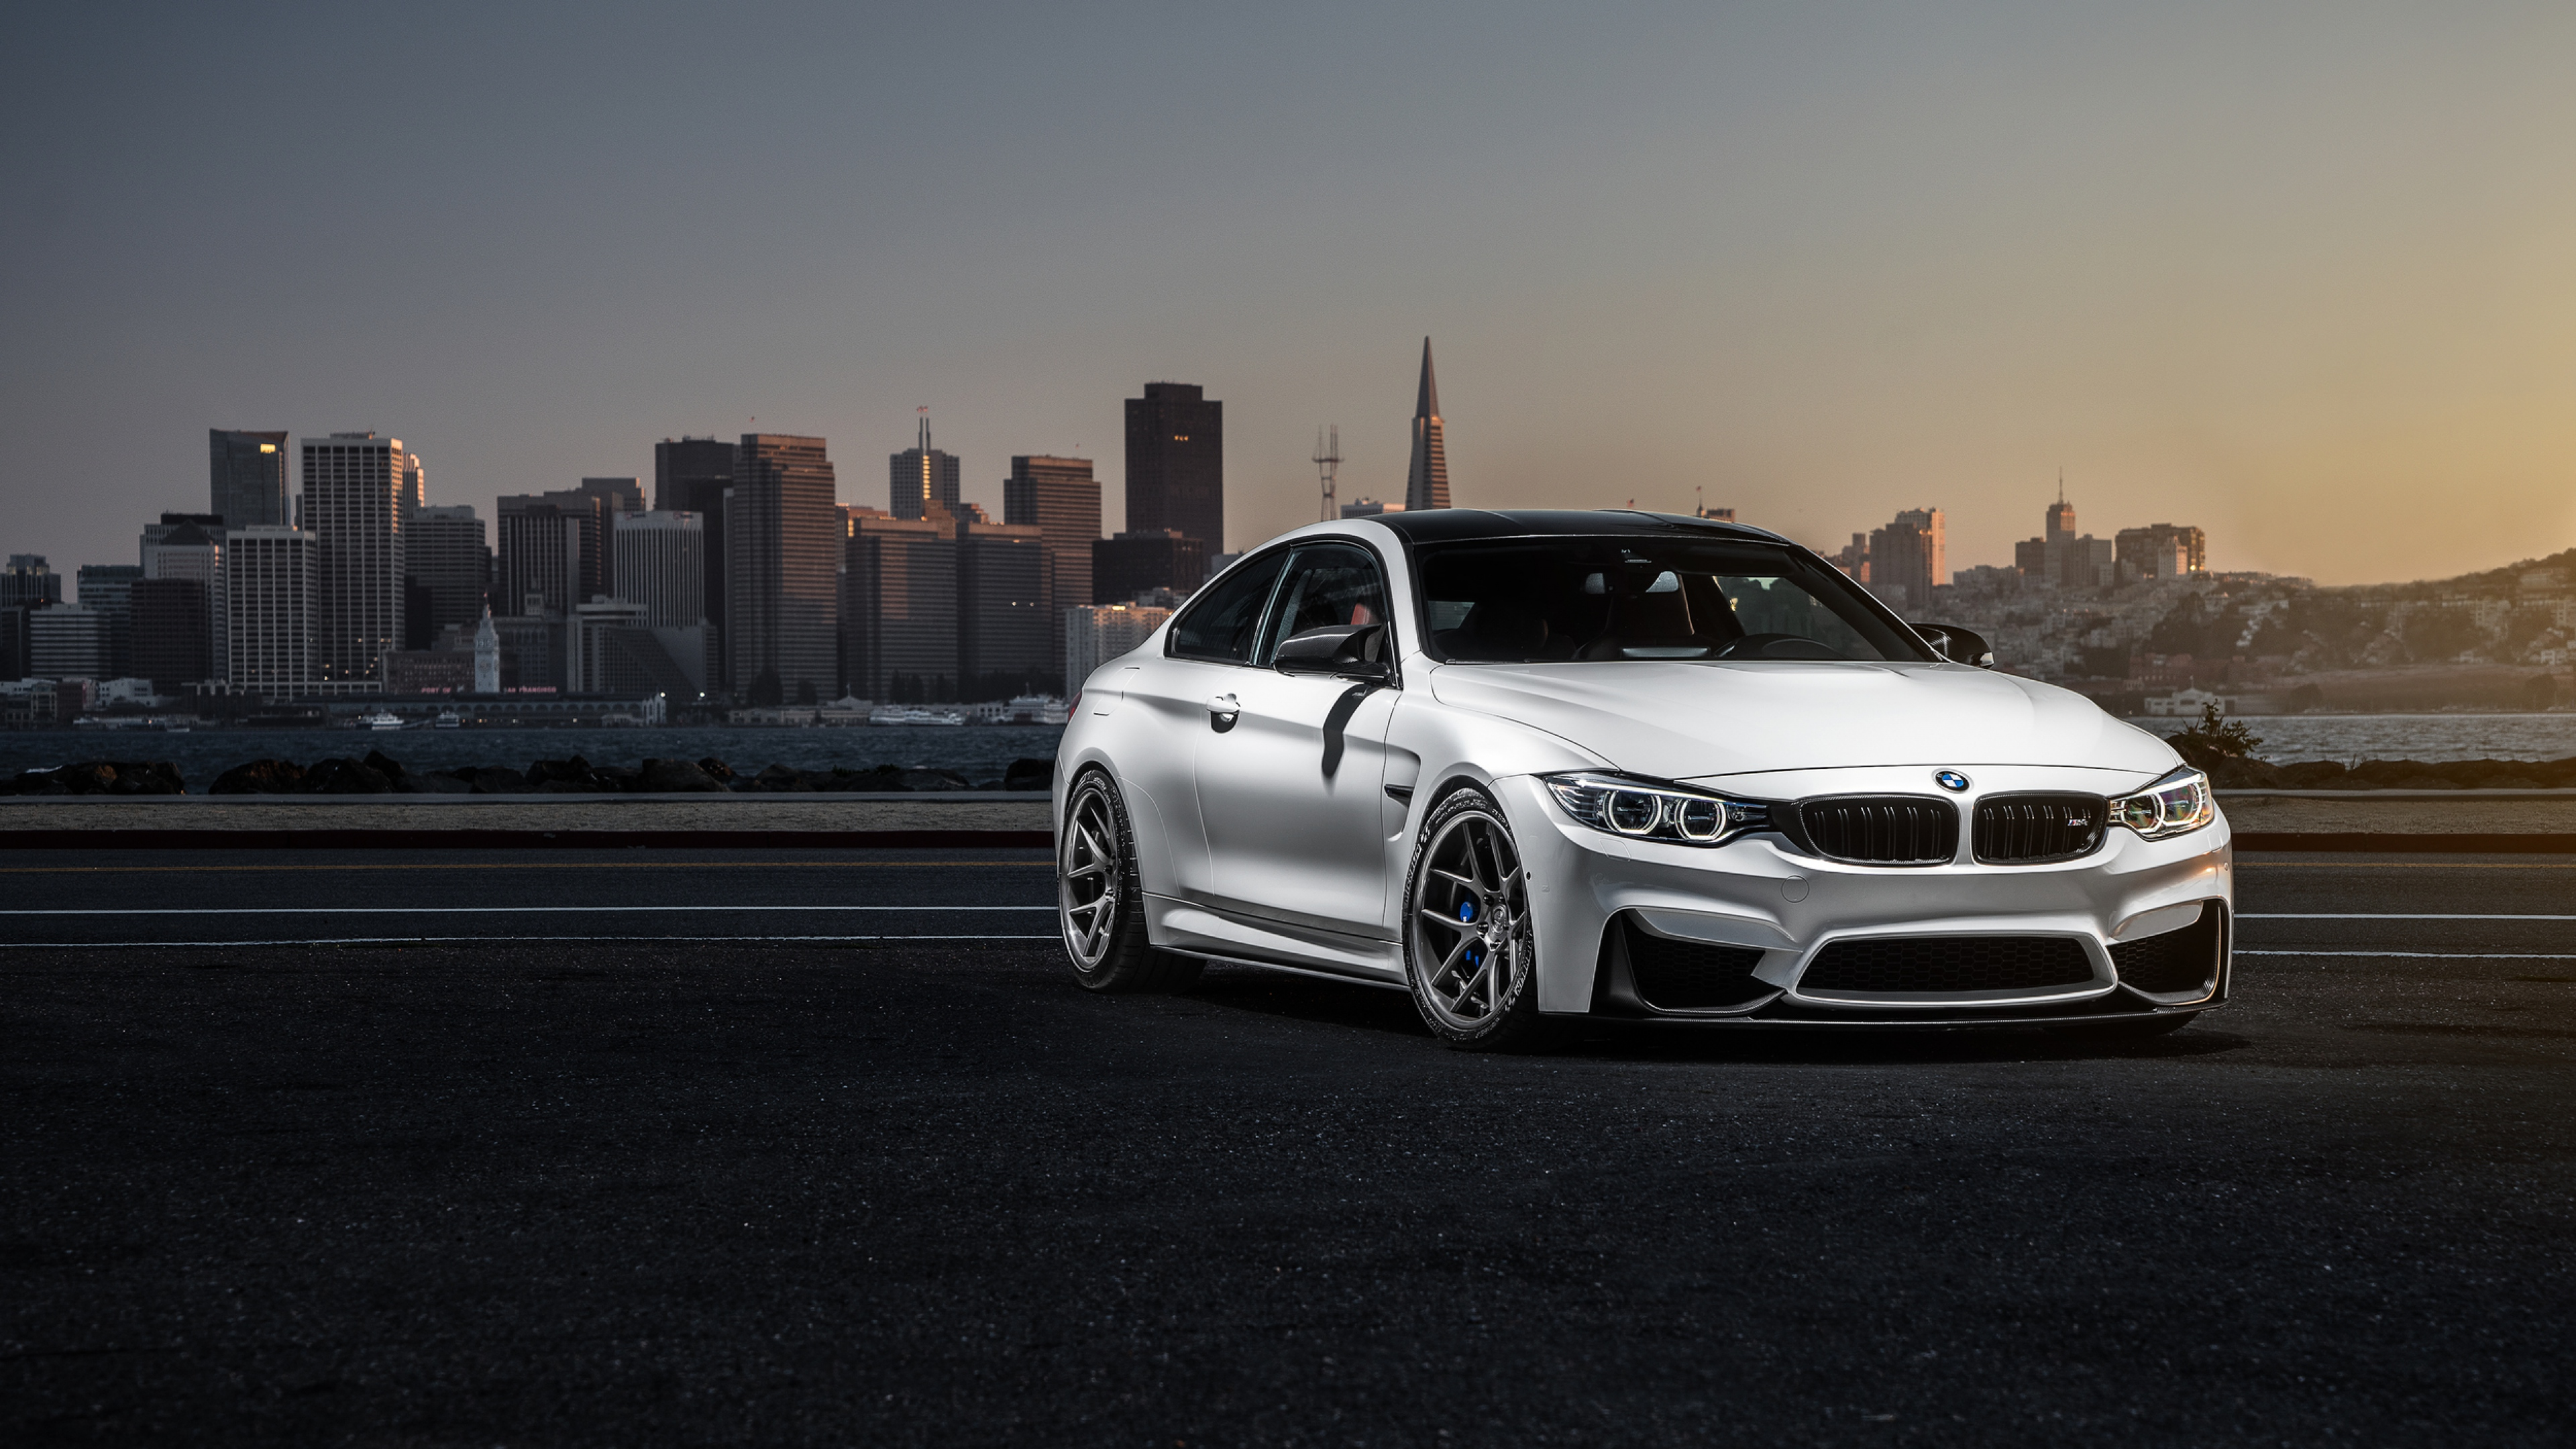 Bmw M4, HD Cars, 4k Wallpapers, Images, Backgrounds ...